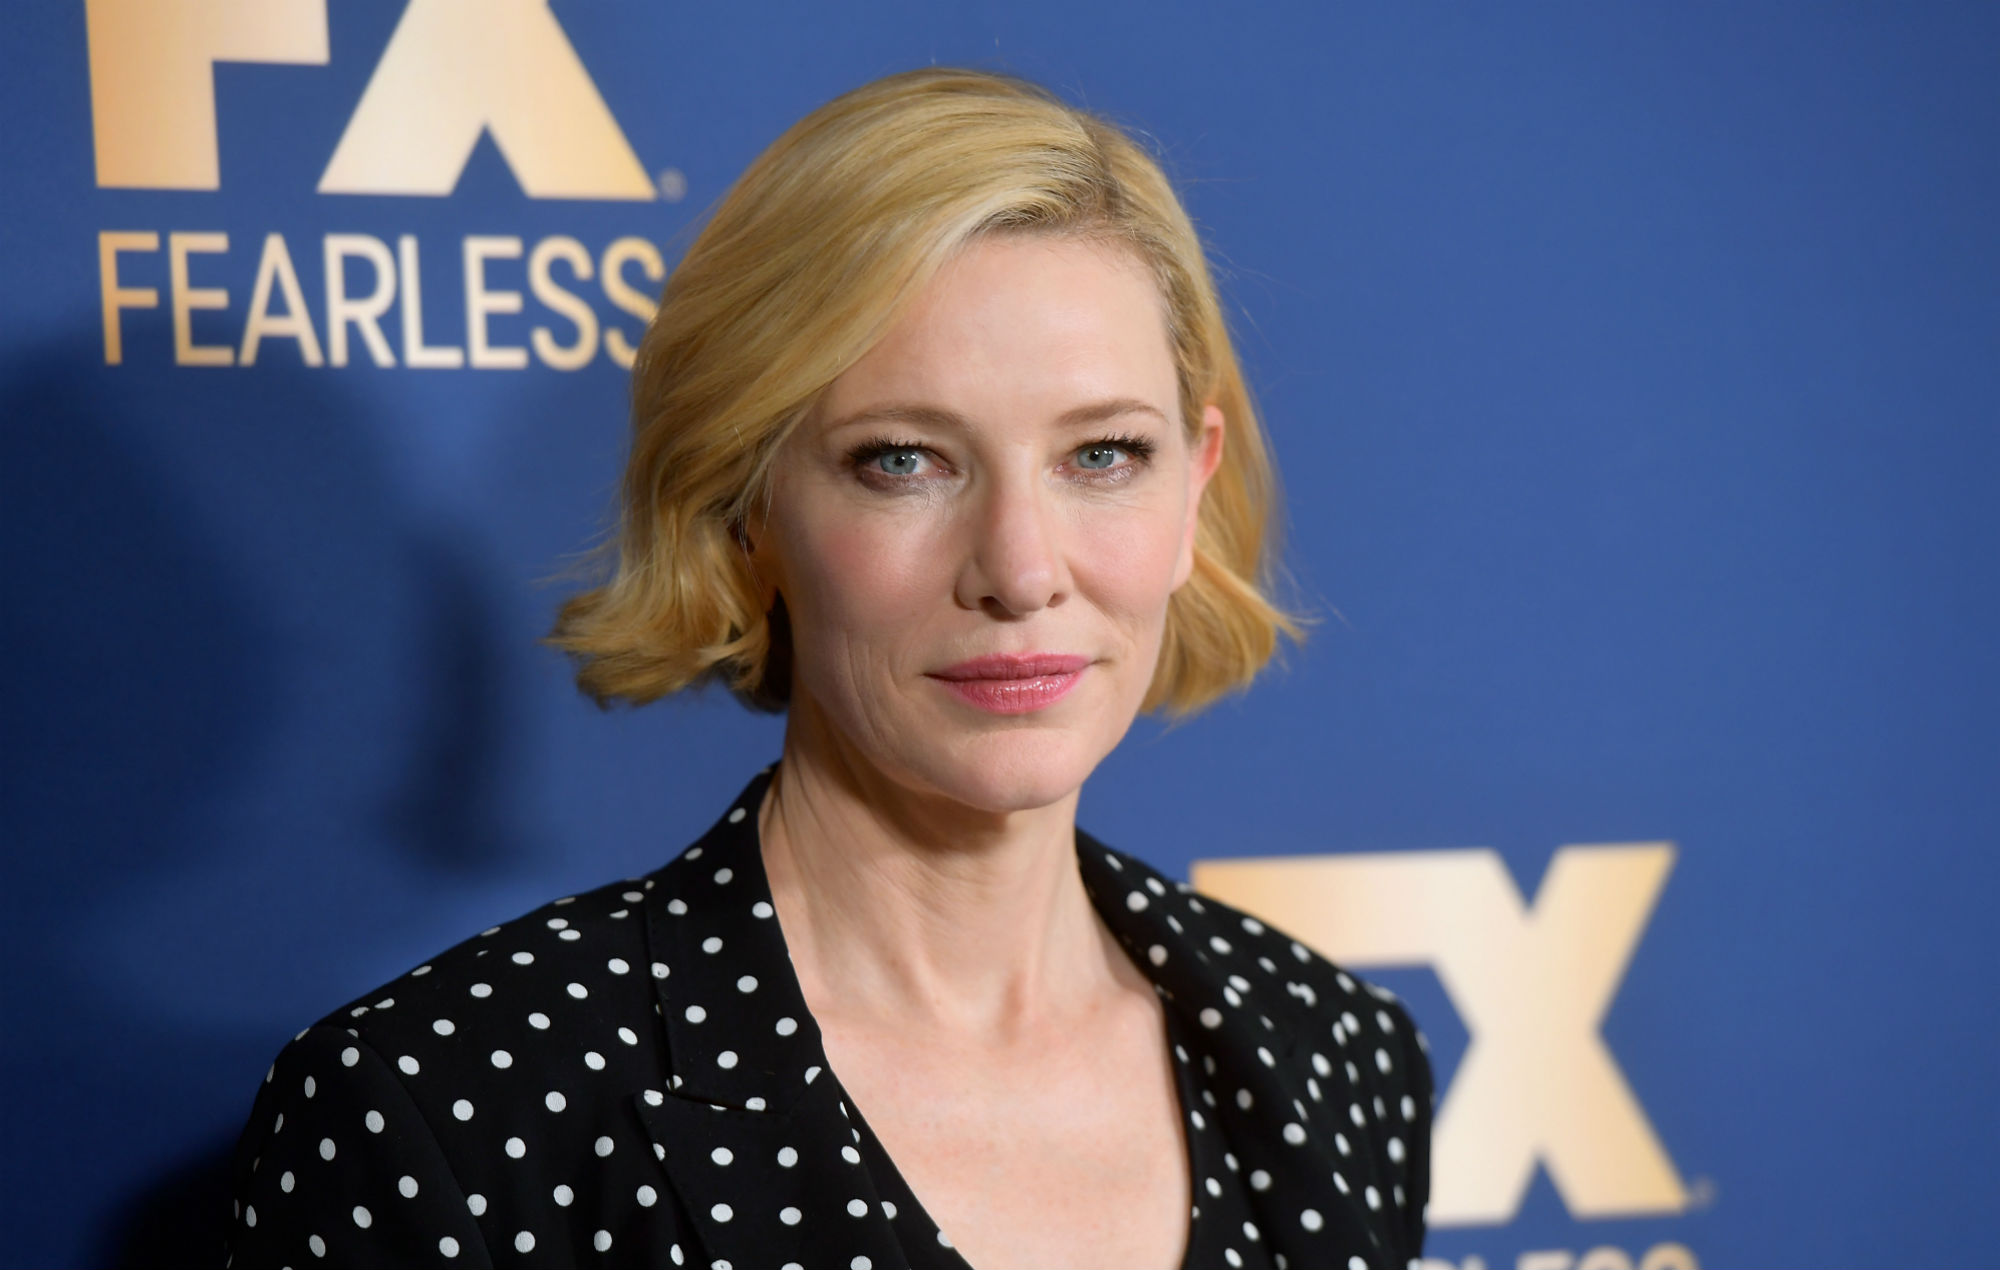 Cate Blanchett Reveals She Almost Played A Dwarf In The Lord Of The Rings